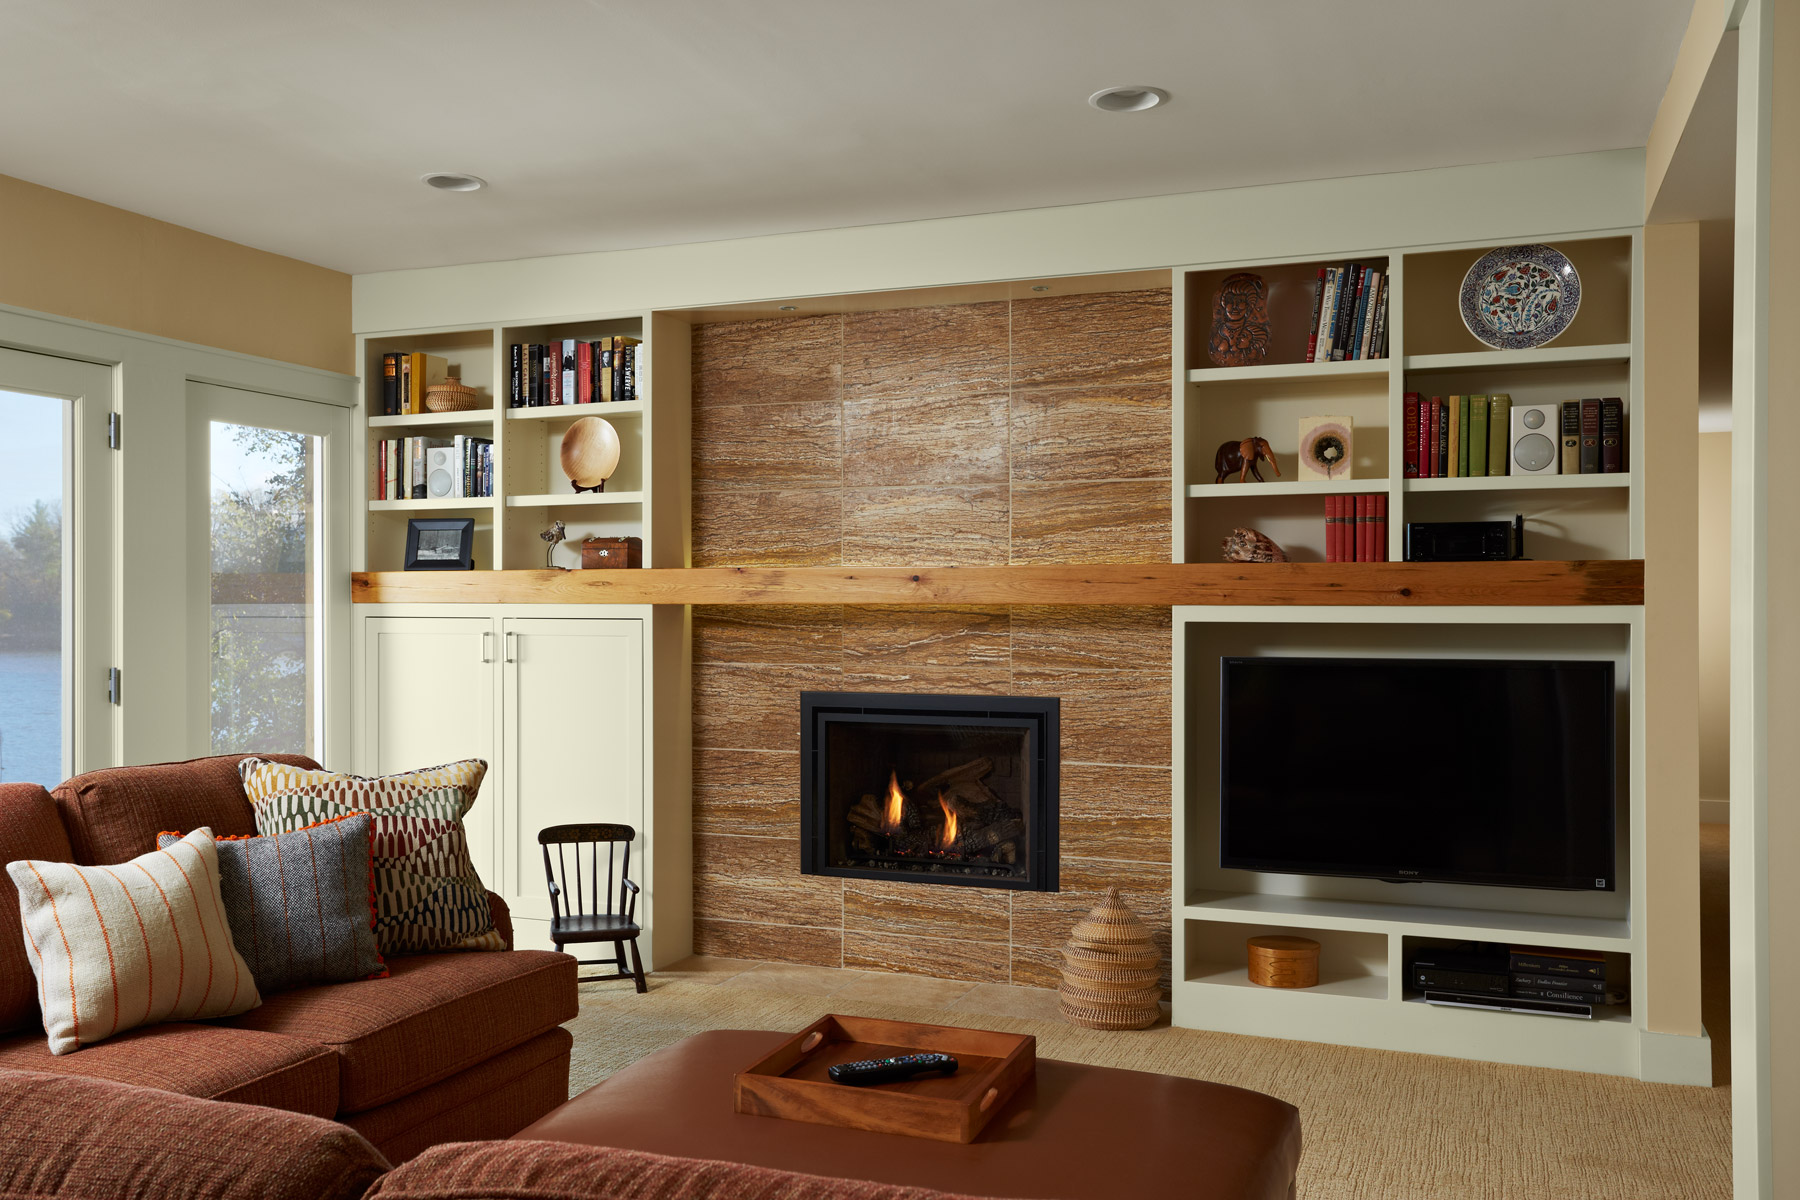 reclaimed wood mantel and stone surround fireplace in renovated lower level rec room